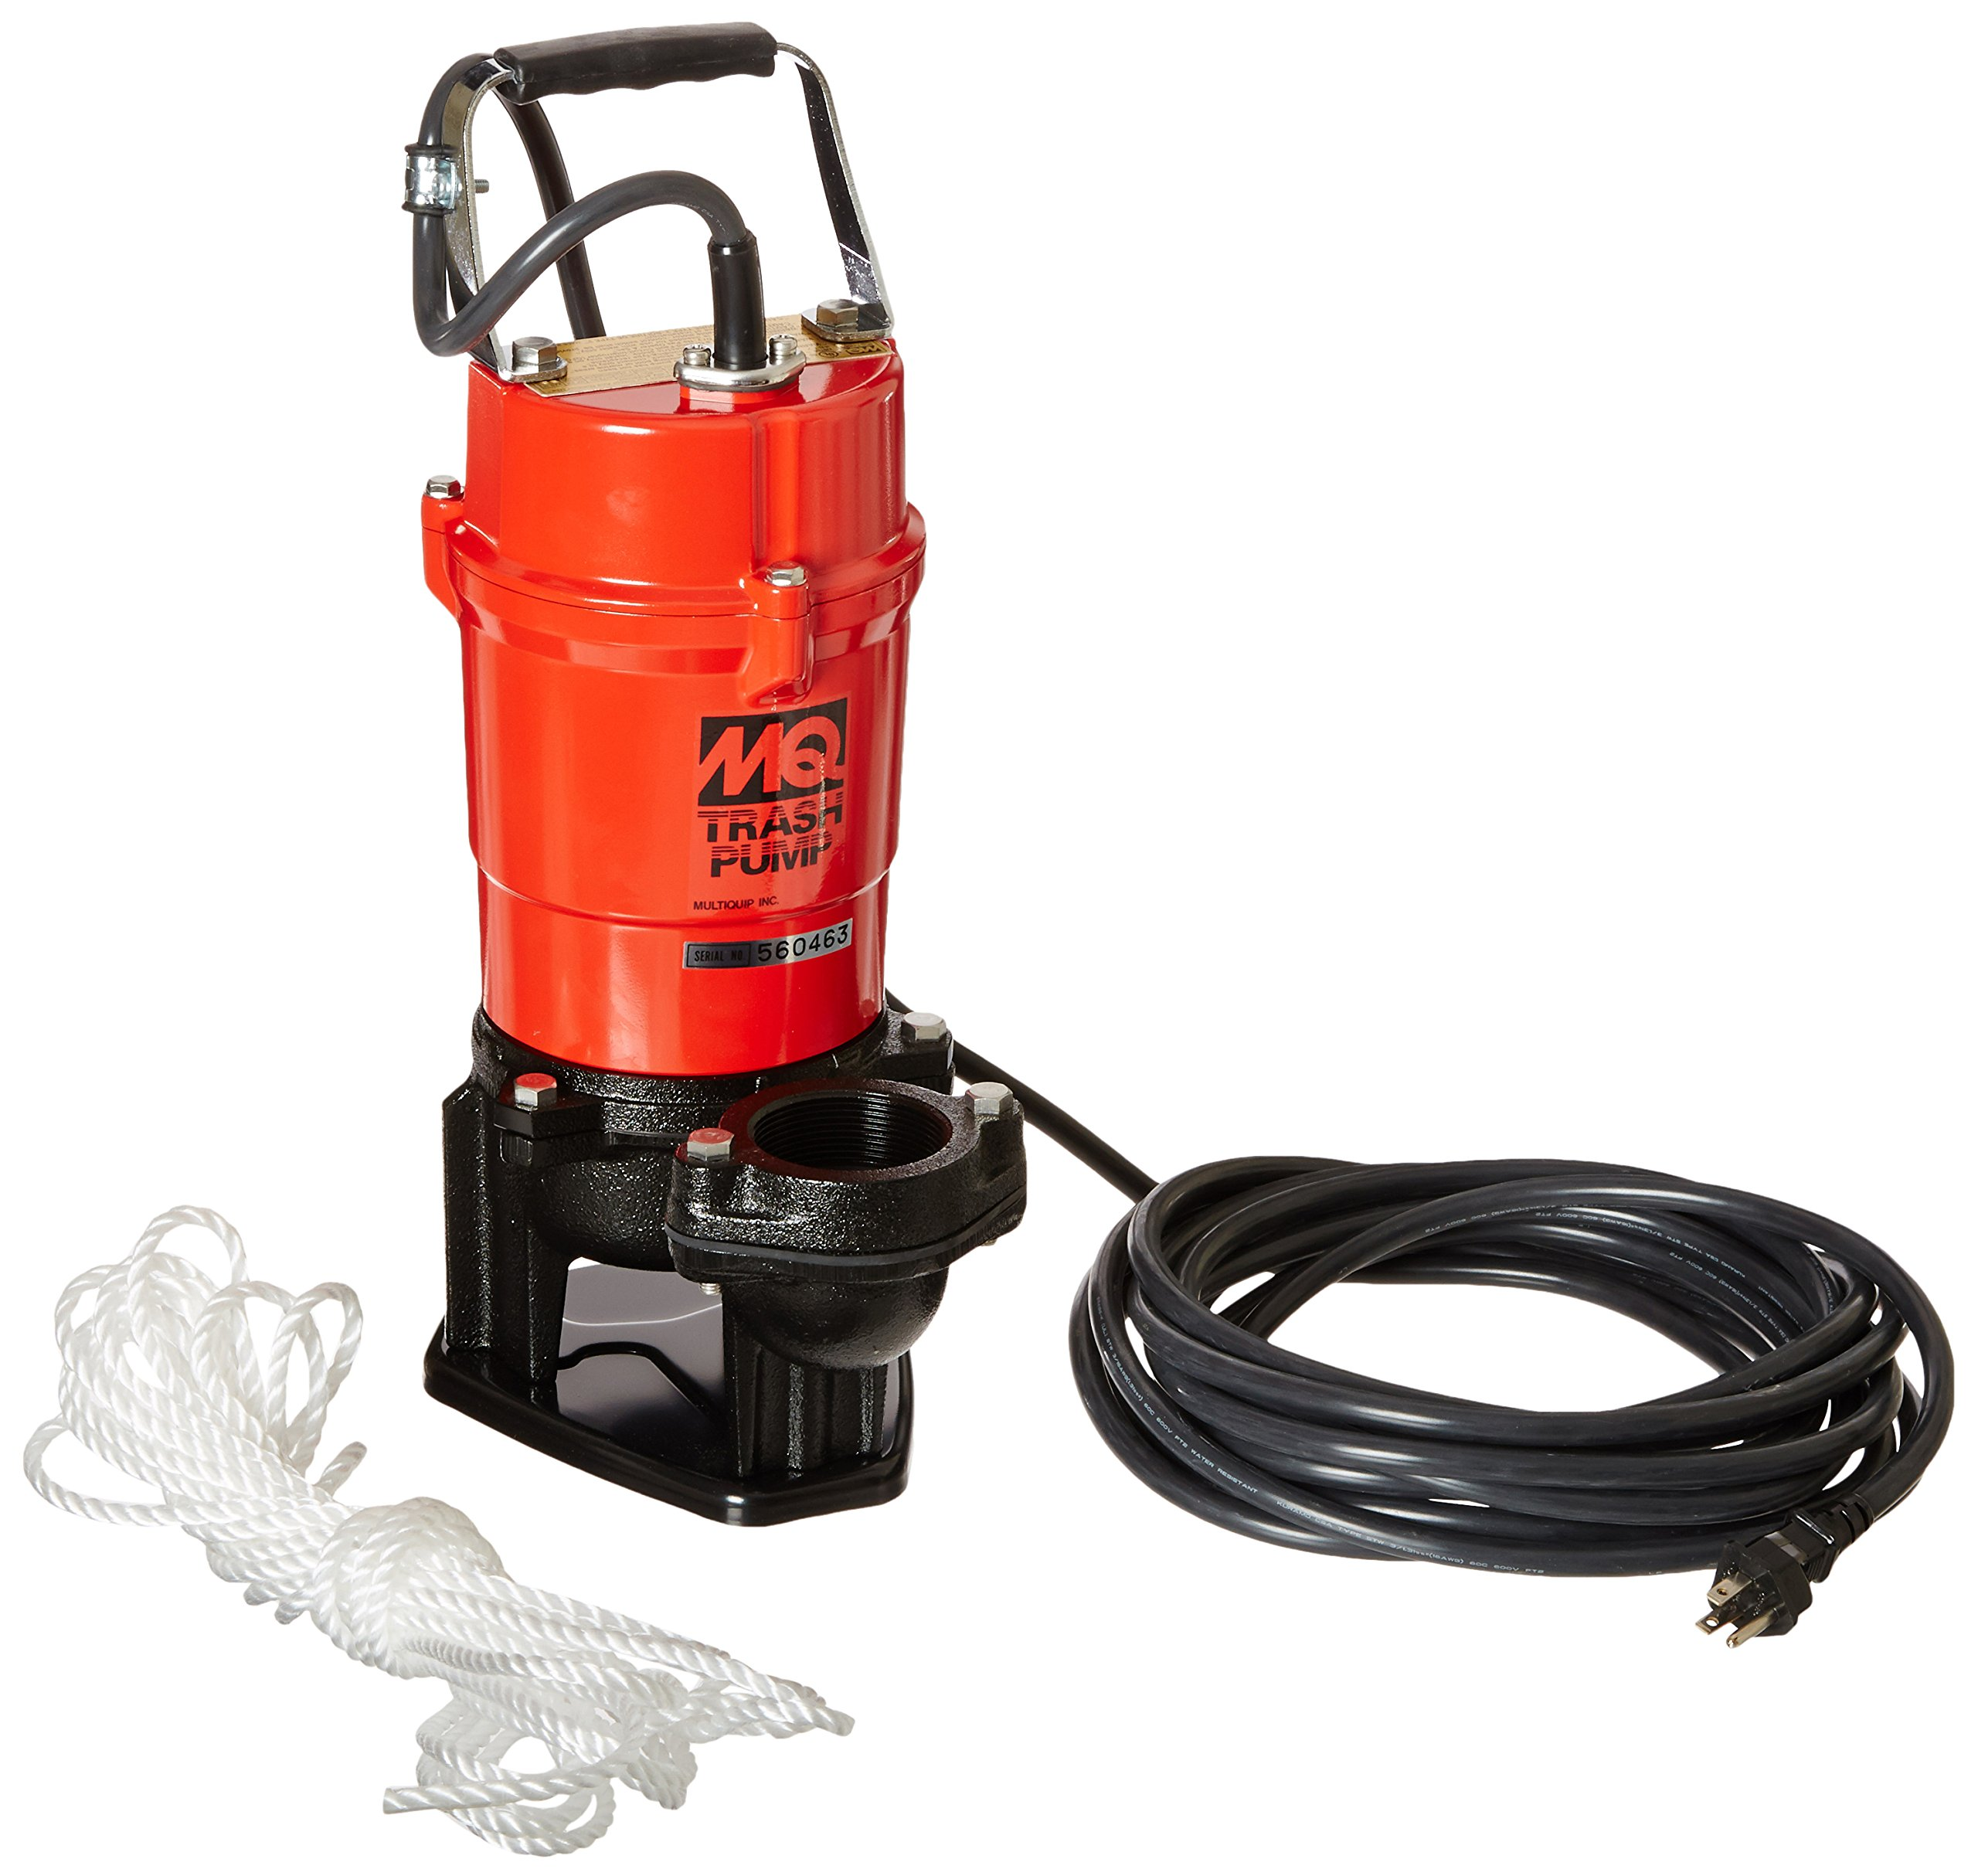 Multiquip ST2040T Electric Submersible Trash Pump with Single Phase Motor, 1 HP, 79 GPM, 2'' Suction & Discharge by Multiquip